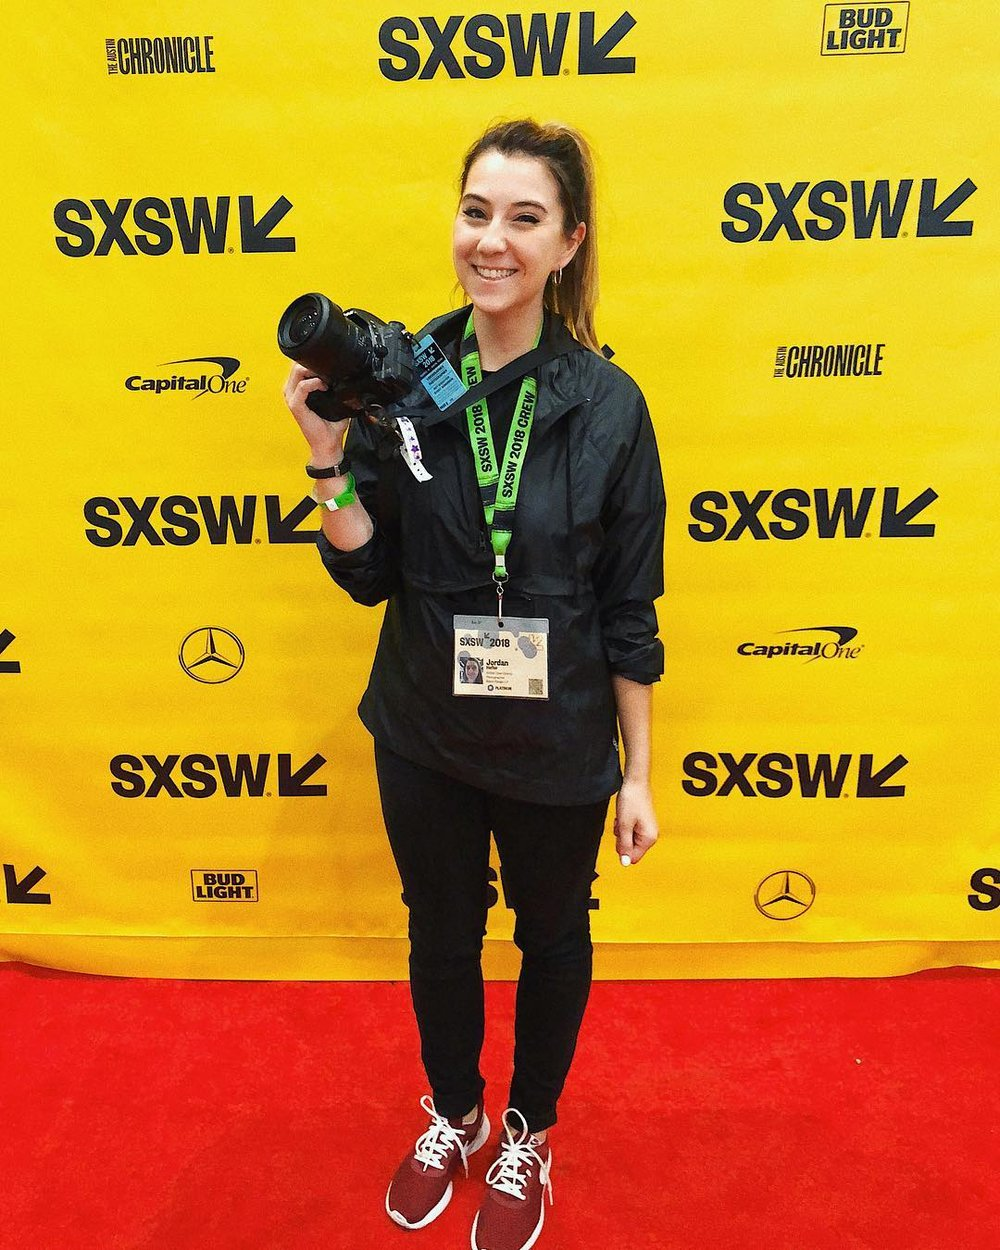 This lightweight Reebok windbreaker was perfect to throw in my bag and wear when photographing all week at SXSW!